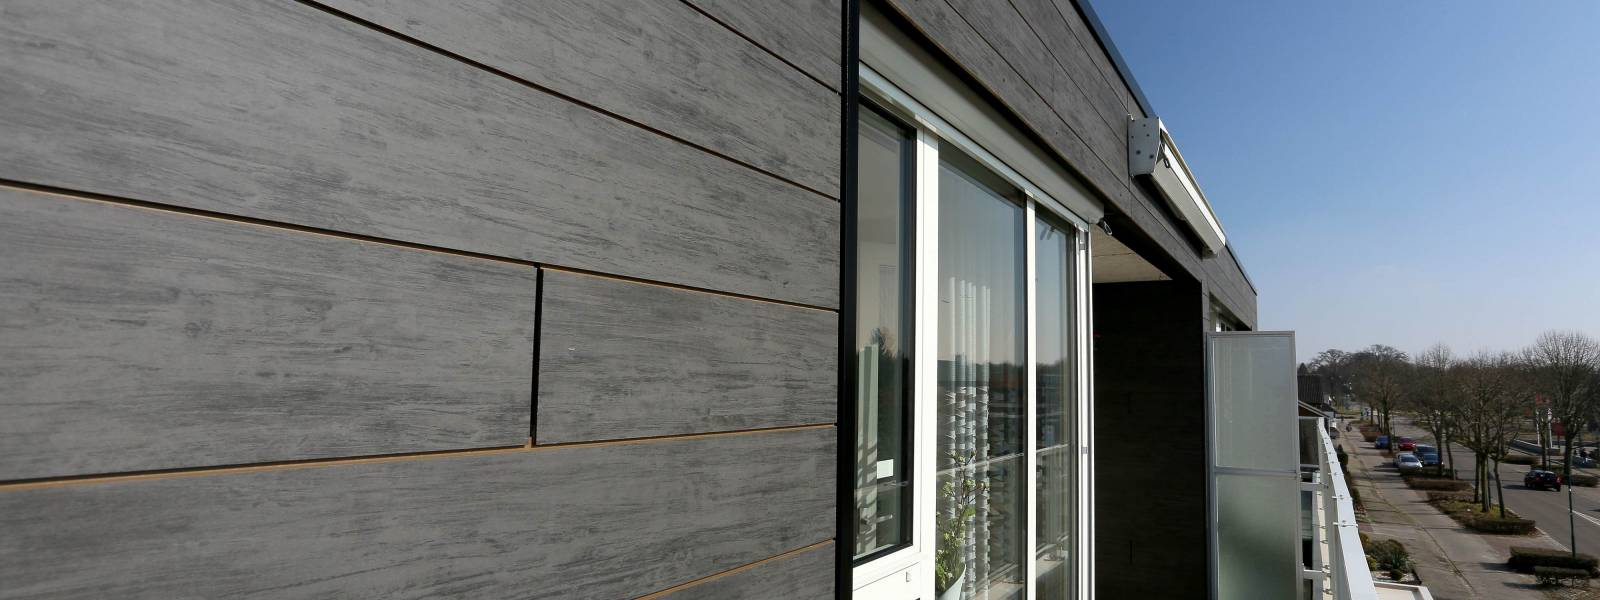 The Attractive and Durable Home Exterior Solution: Trespa Pura